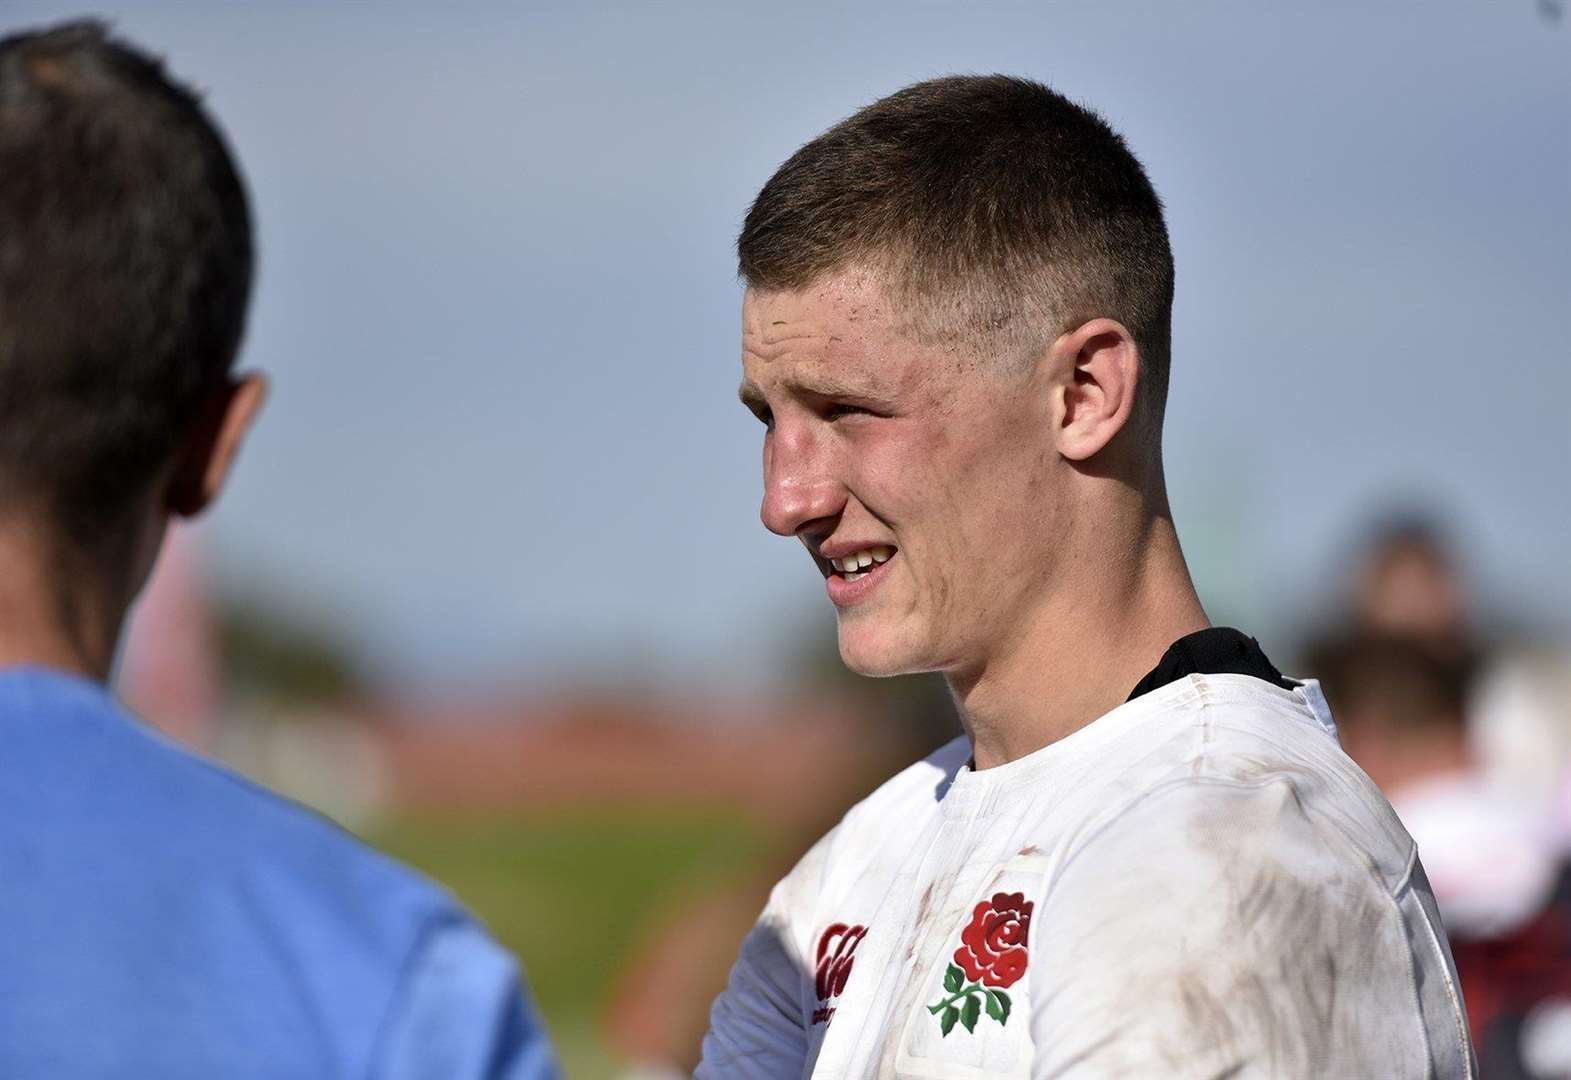 Former Cambridge colts Fraser Dingwall and Alex Coles selected for England under-20s to face Ireland in Six Nations